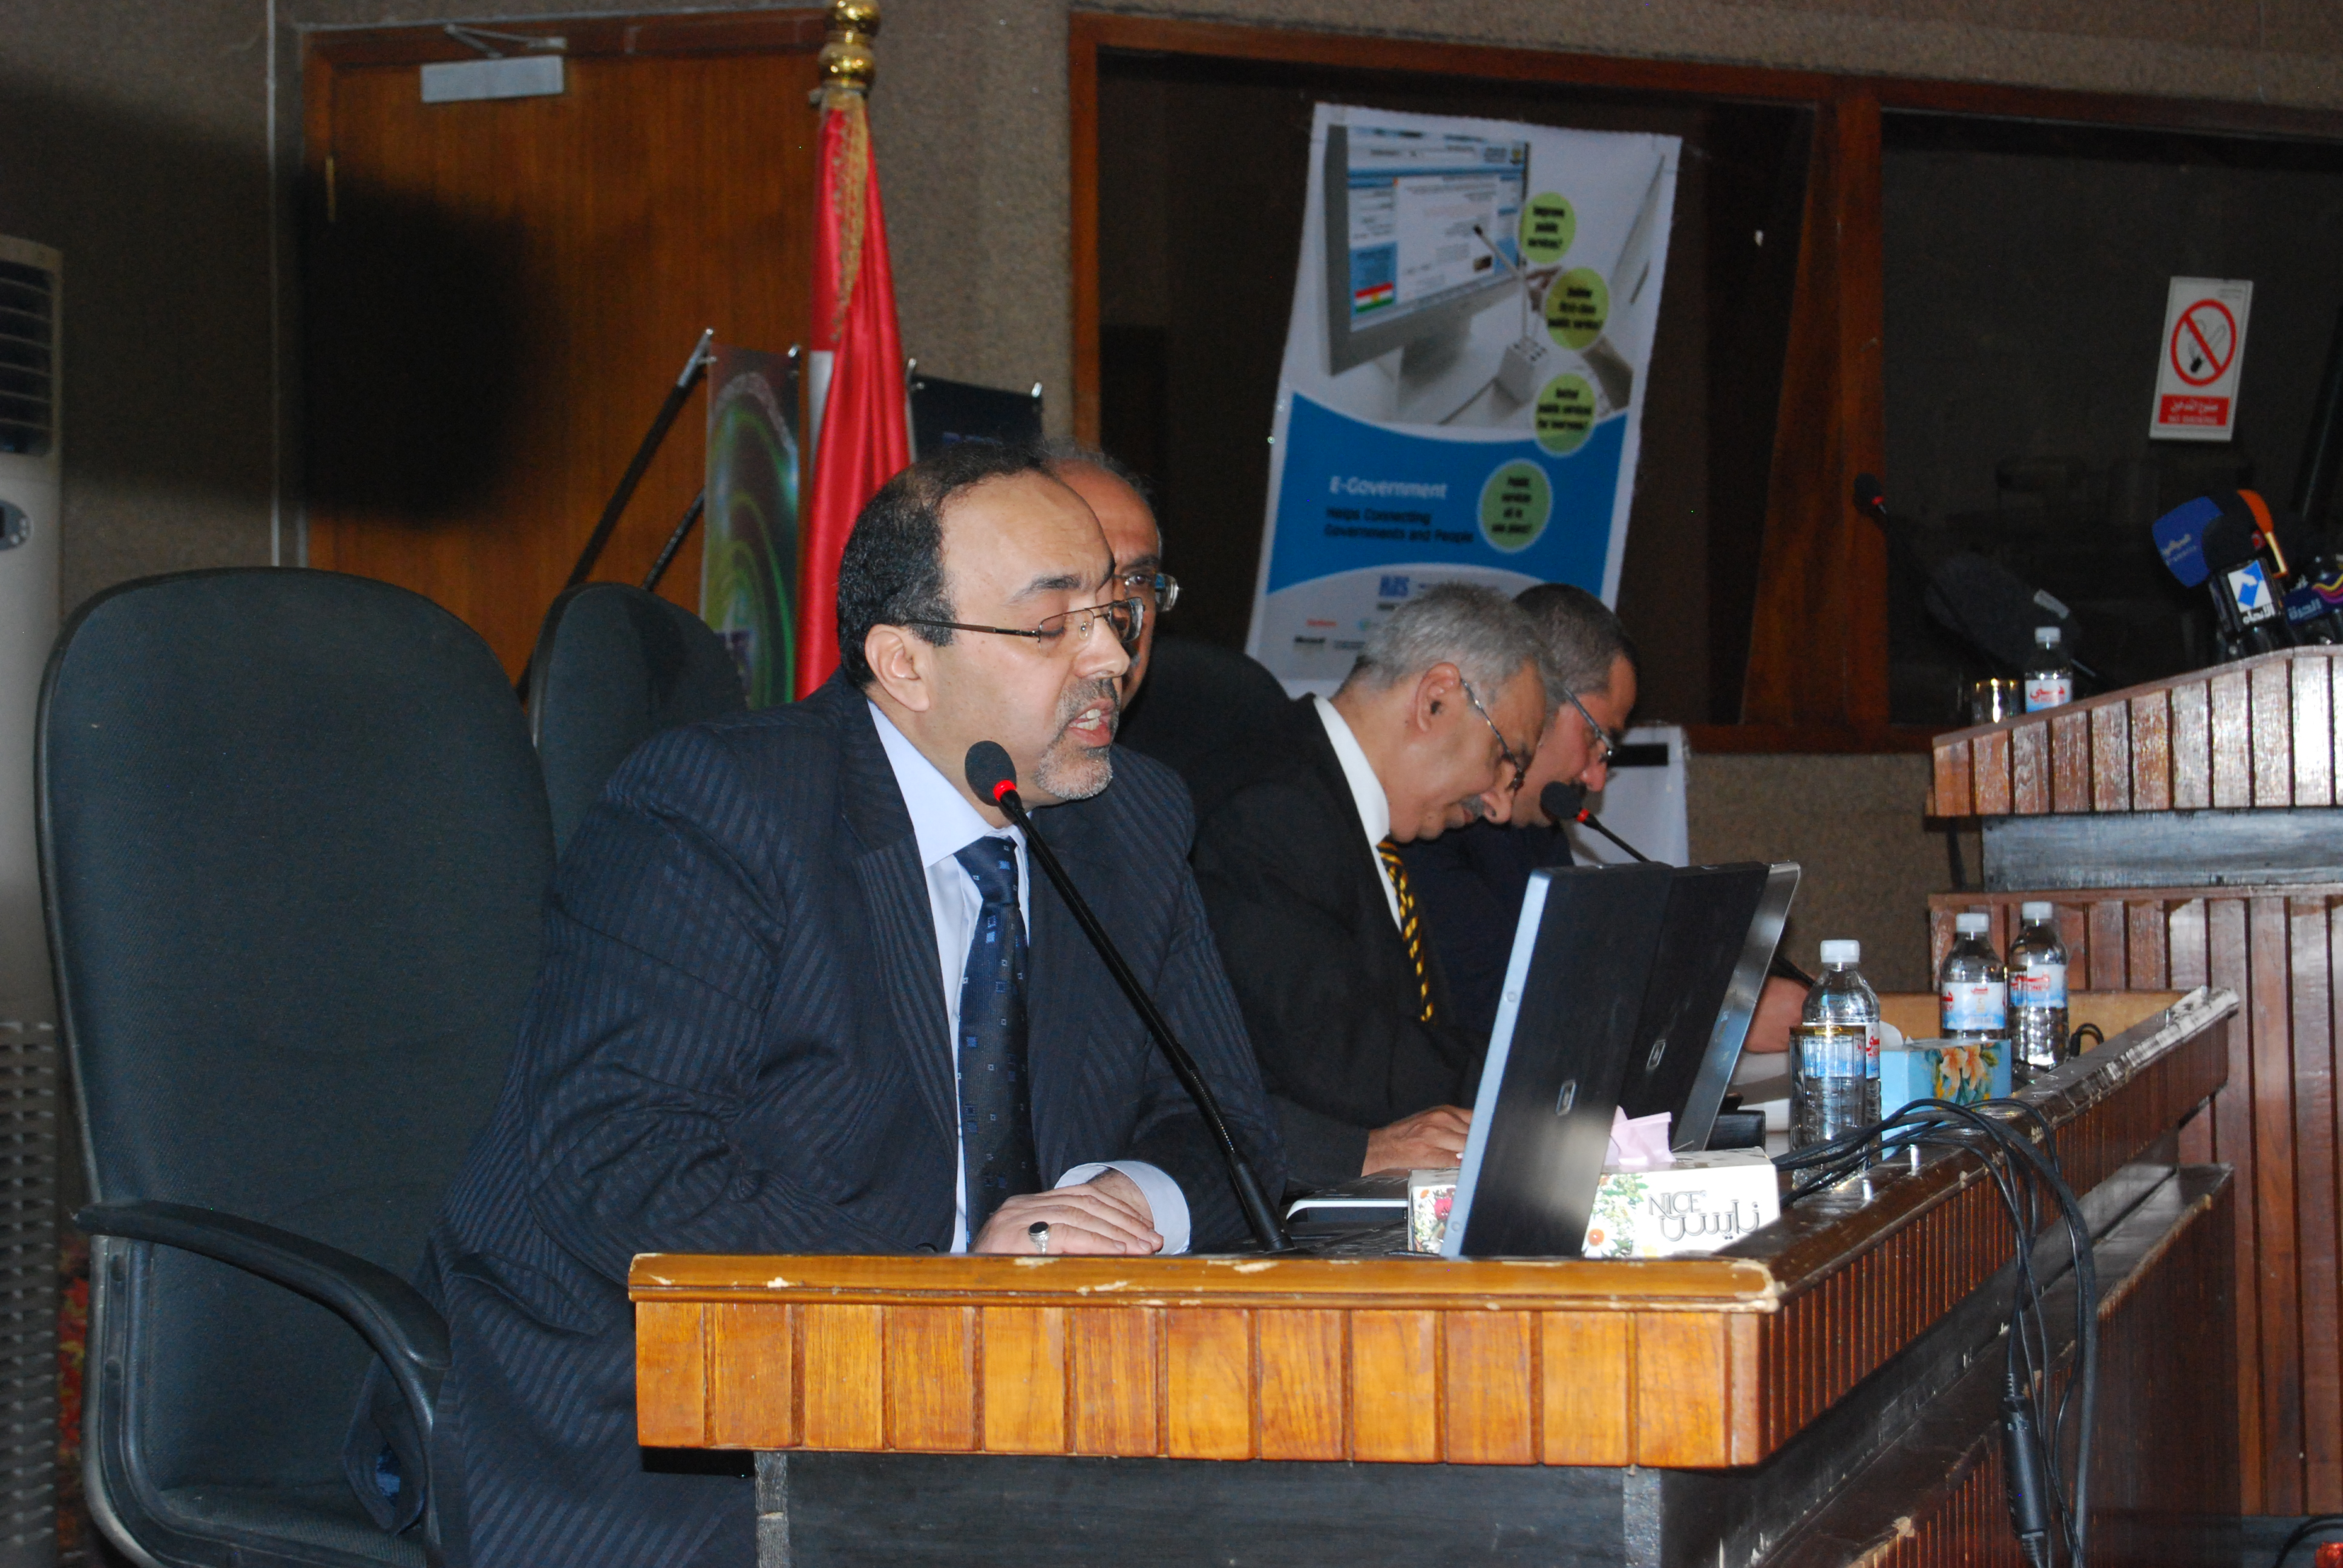 Bassil Youssef/CNN.  The head of Mustansiriya University giving a presentation about the university IT projects.